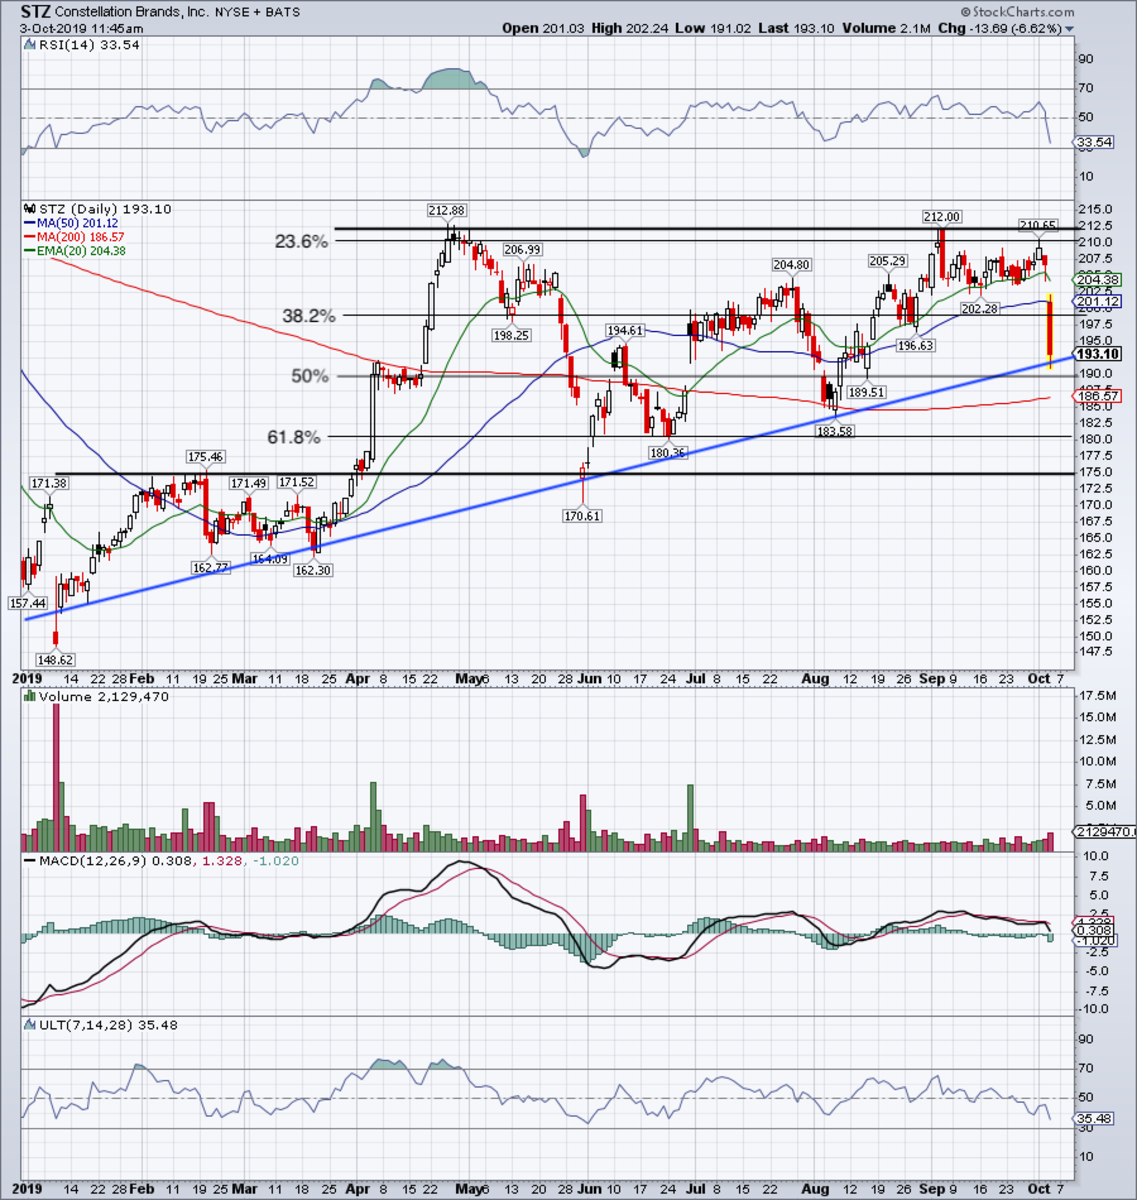 Daily chart of Constellation Brands stock.